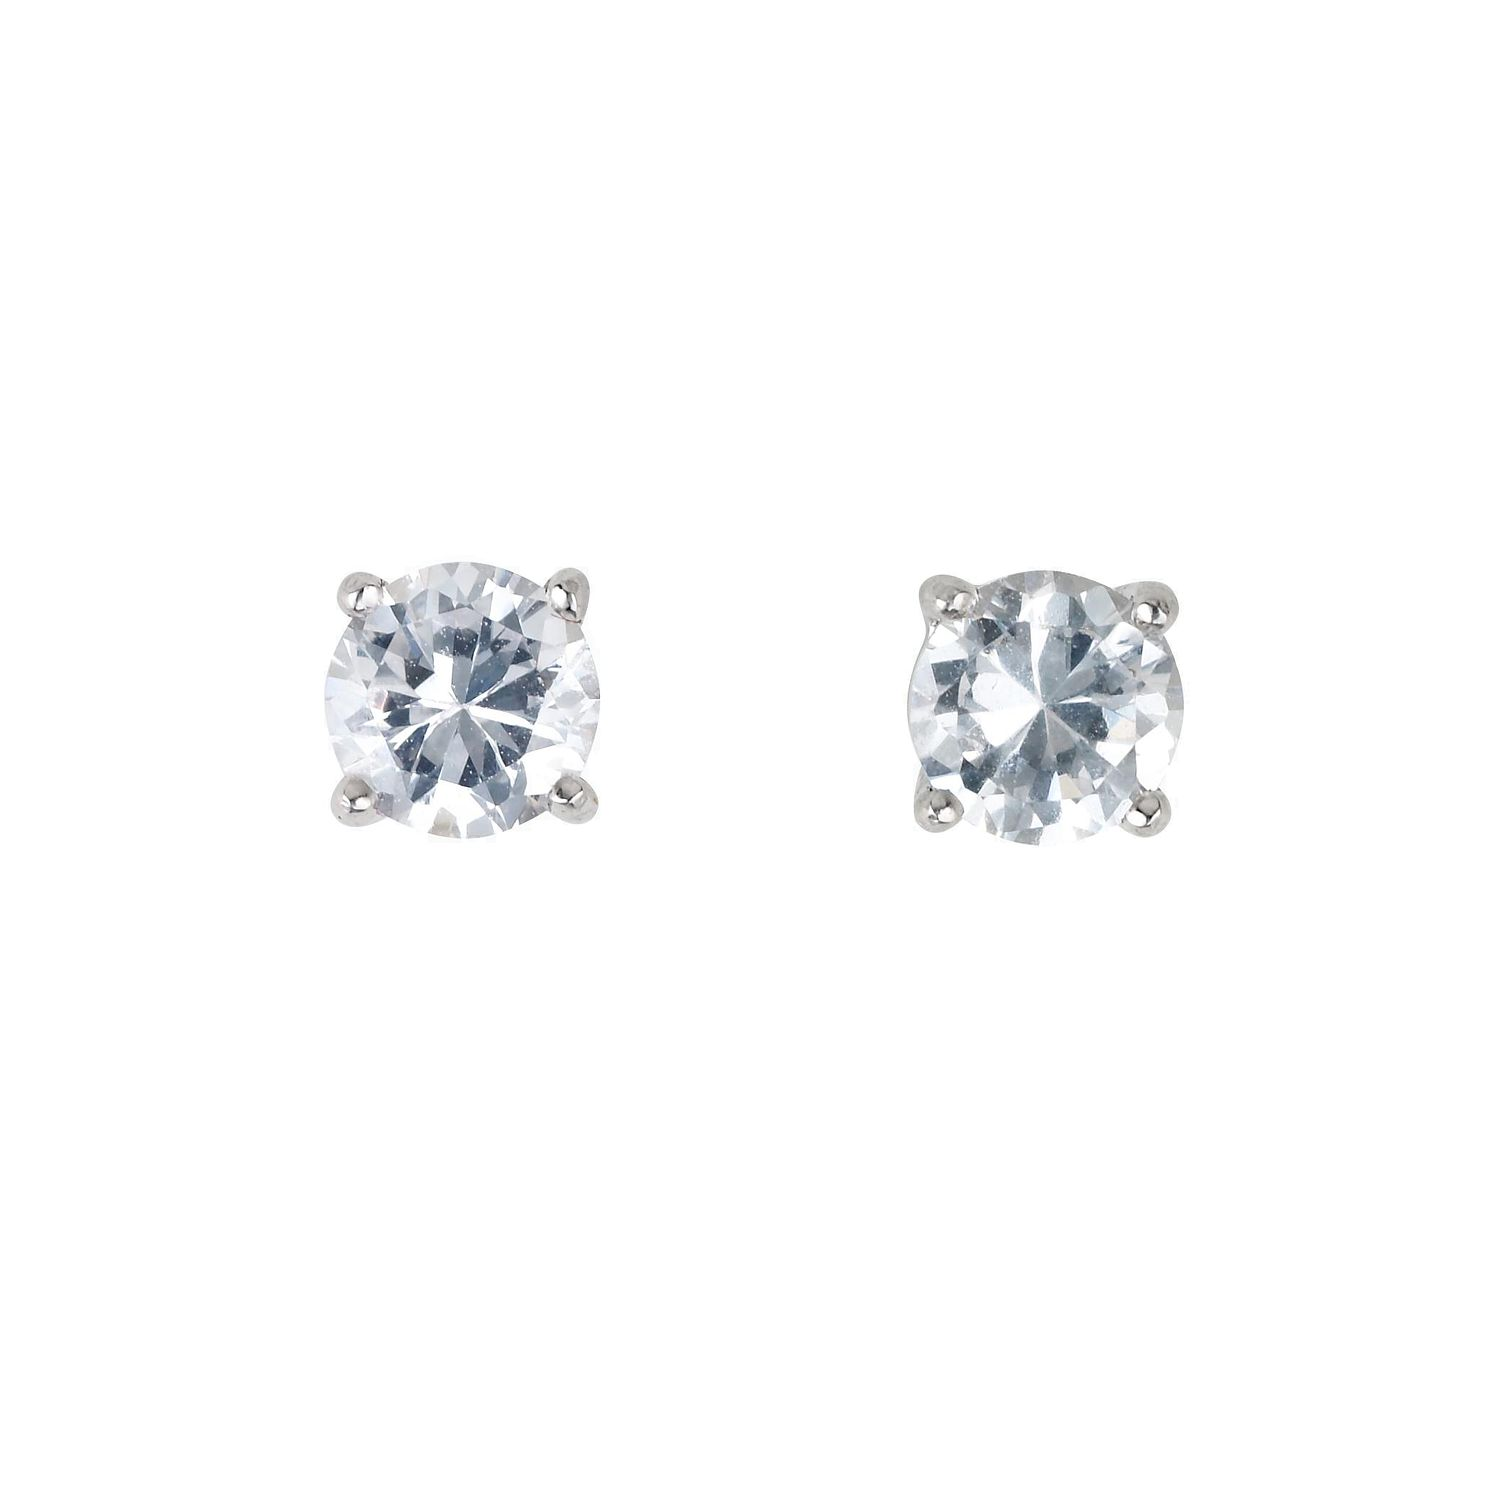 18ct White Gold Two Thirds Of A Carat Diamond Stud Earrings - Product number 5972582